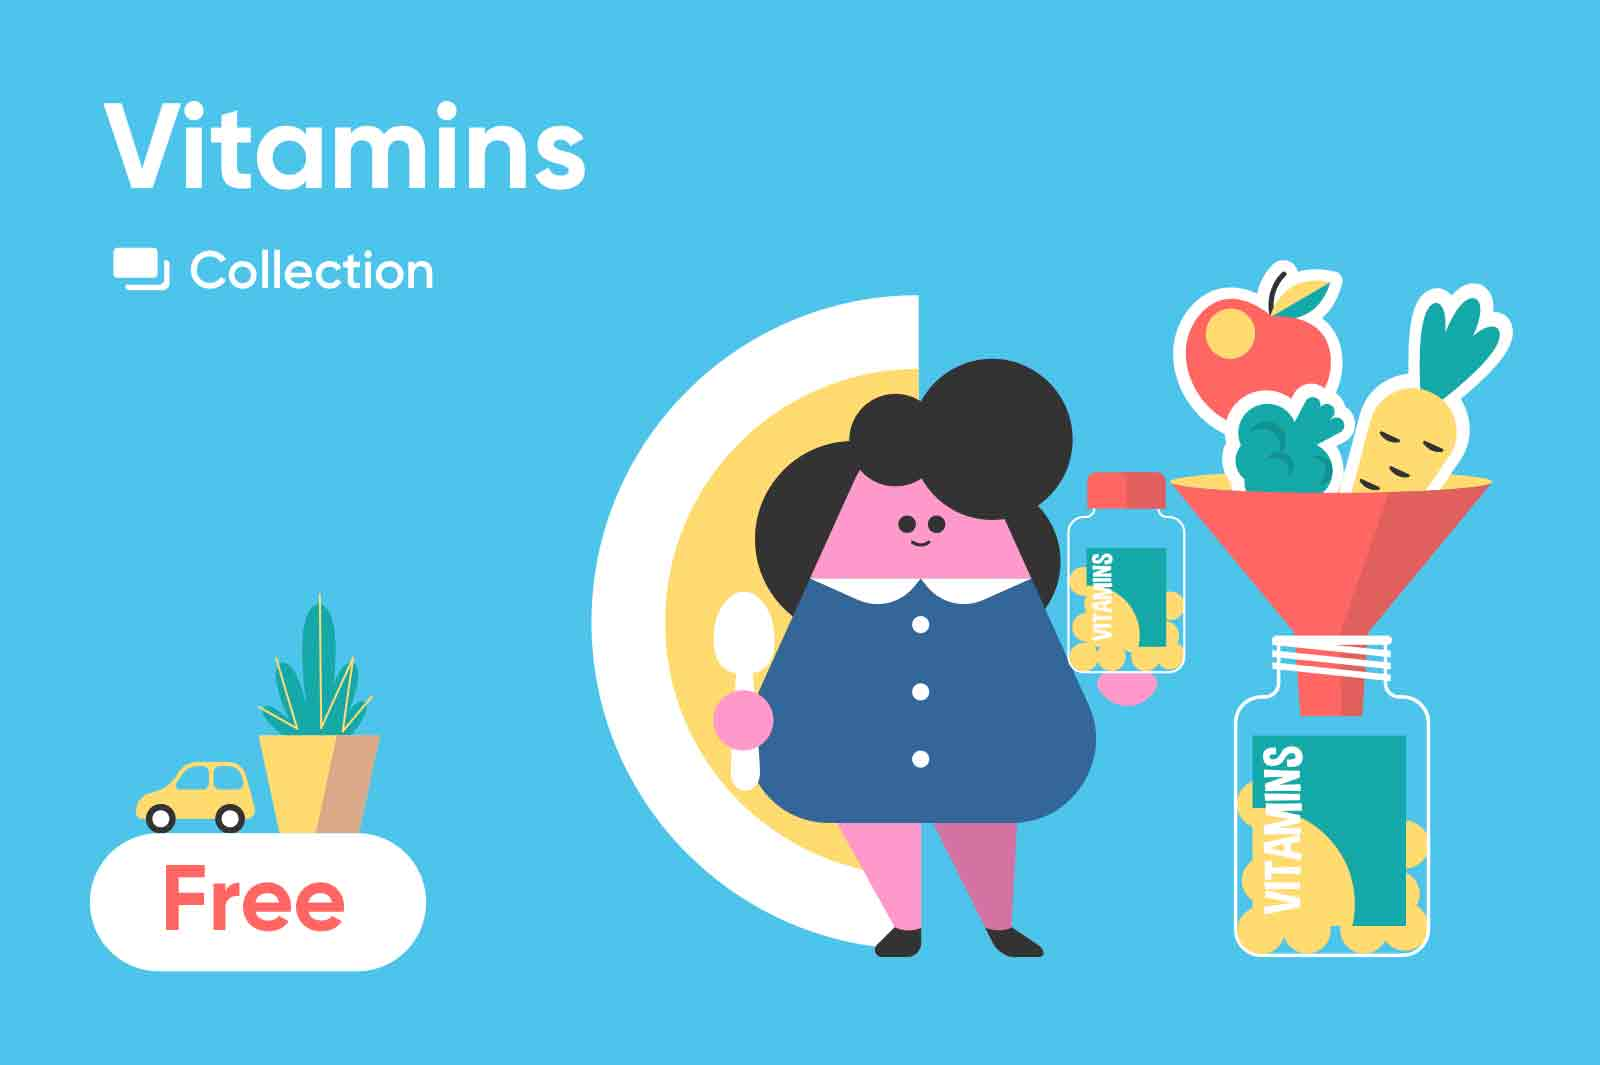 Fun illustration series about yang rapidly growing kids that needs in vitamins and what food and practicies helps kids stay healthy. Vector illustrations